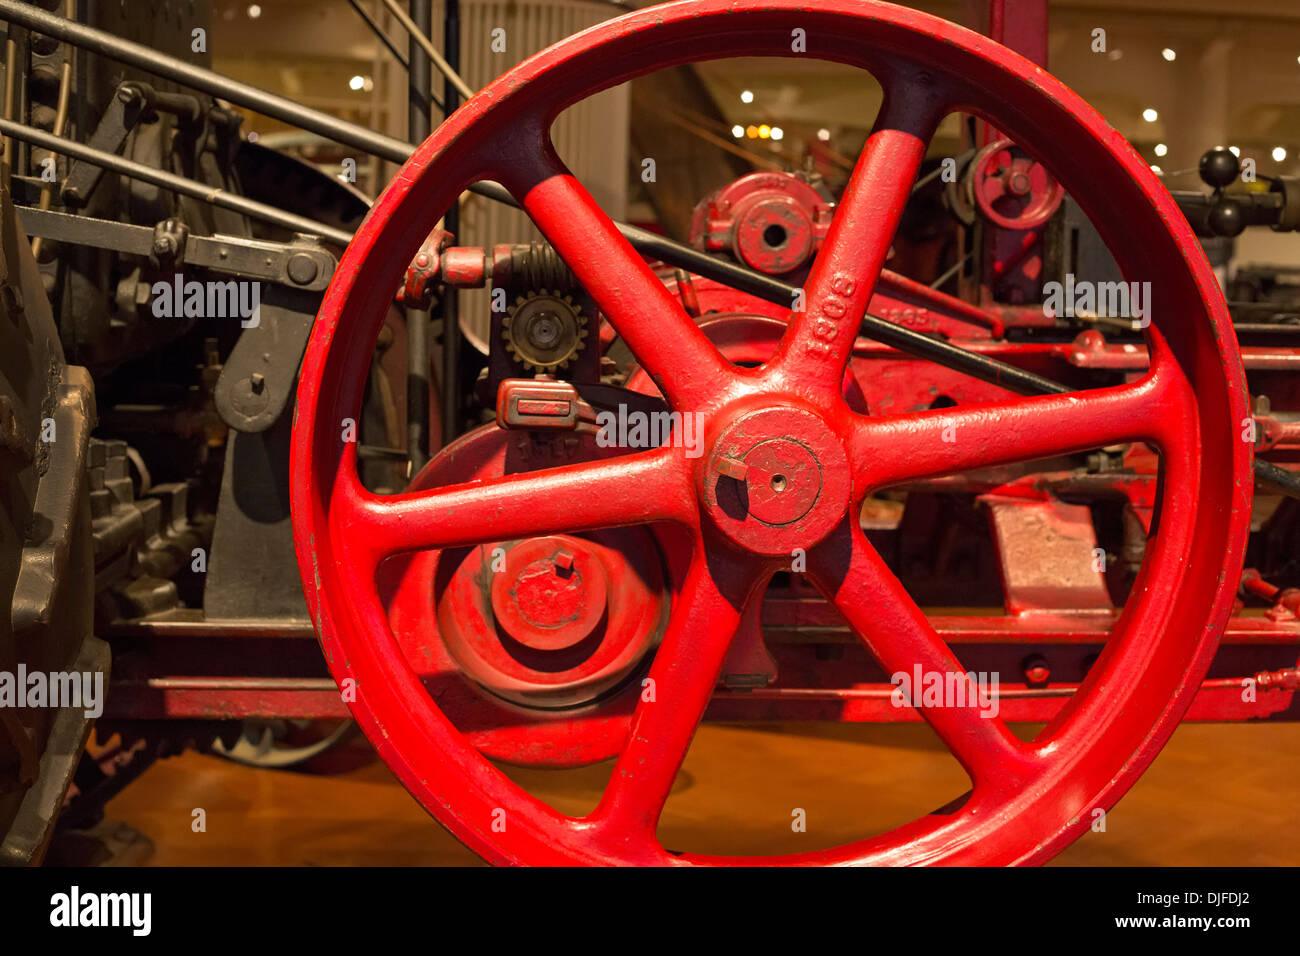 Dearborn, Michigan - Detail of a steam traction engine at the Henry Ford Museum. It was used to plow large farms - Stock Image